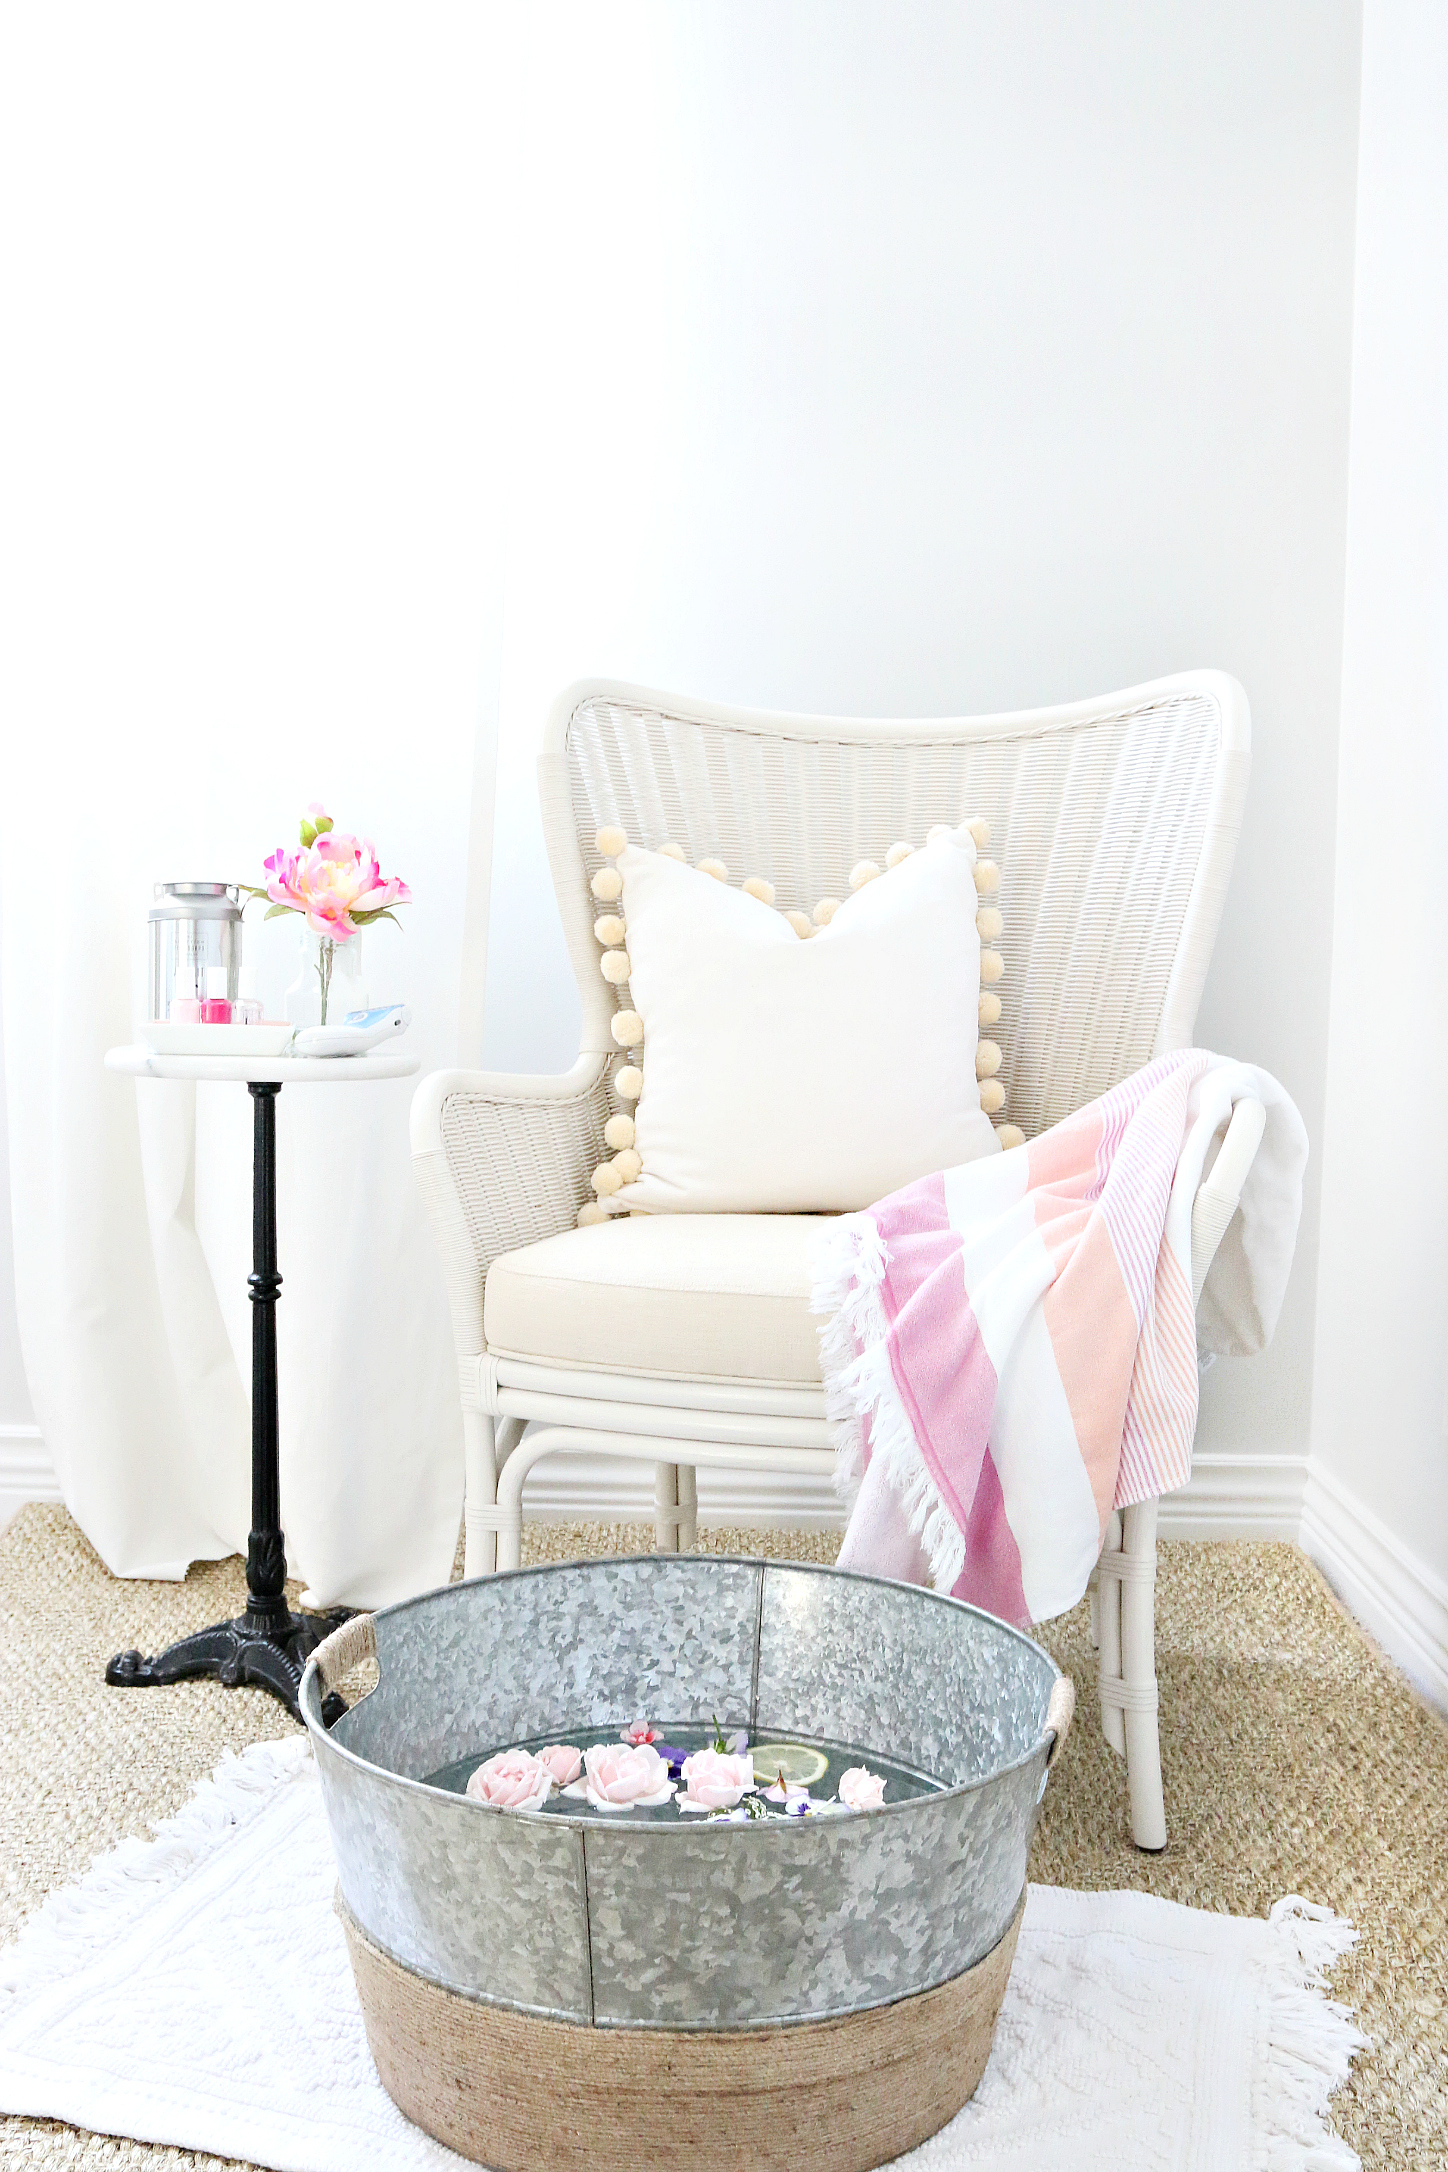 Home Pedicure | MH by Monika Hibbs | Bloglovin'